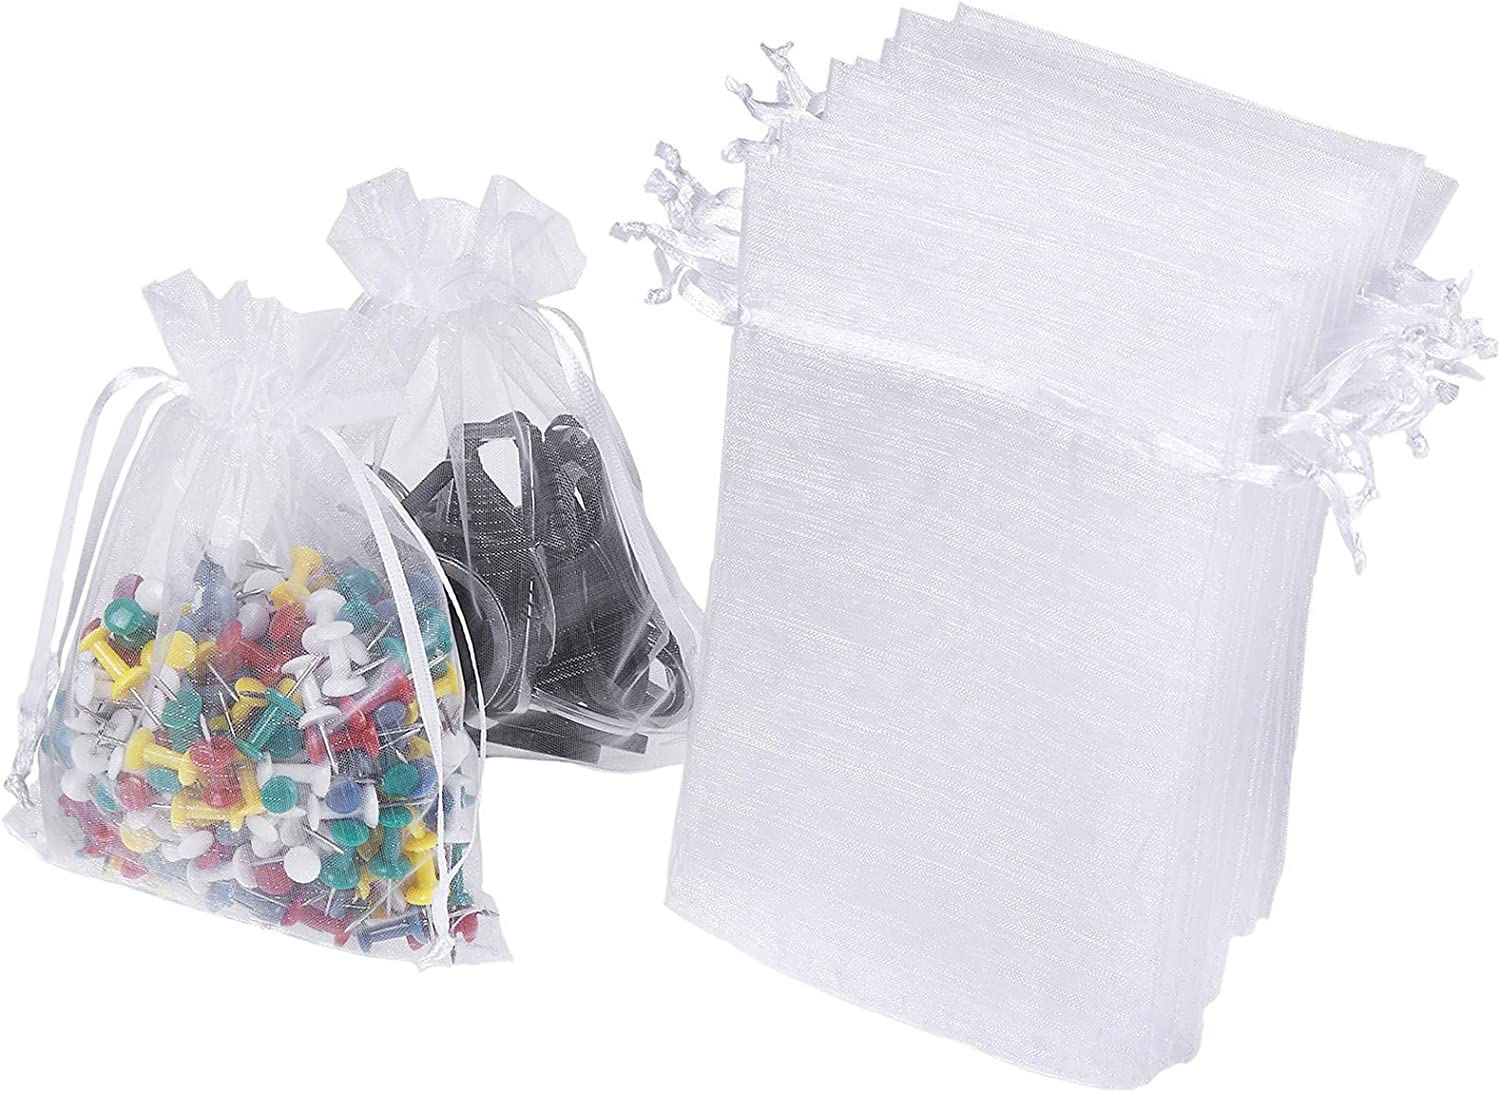 Black 200 Pieces Organza Drawstring Bags Organza Favor Pouches Sheer Gift Bags Candy Bags for Jewelry Party Wedding Party Festival 3 x 4 Inch and 4 x 6 Inch